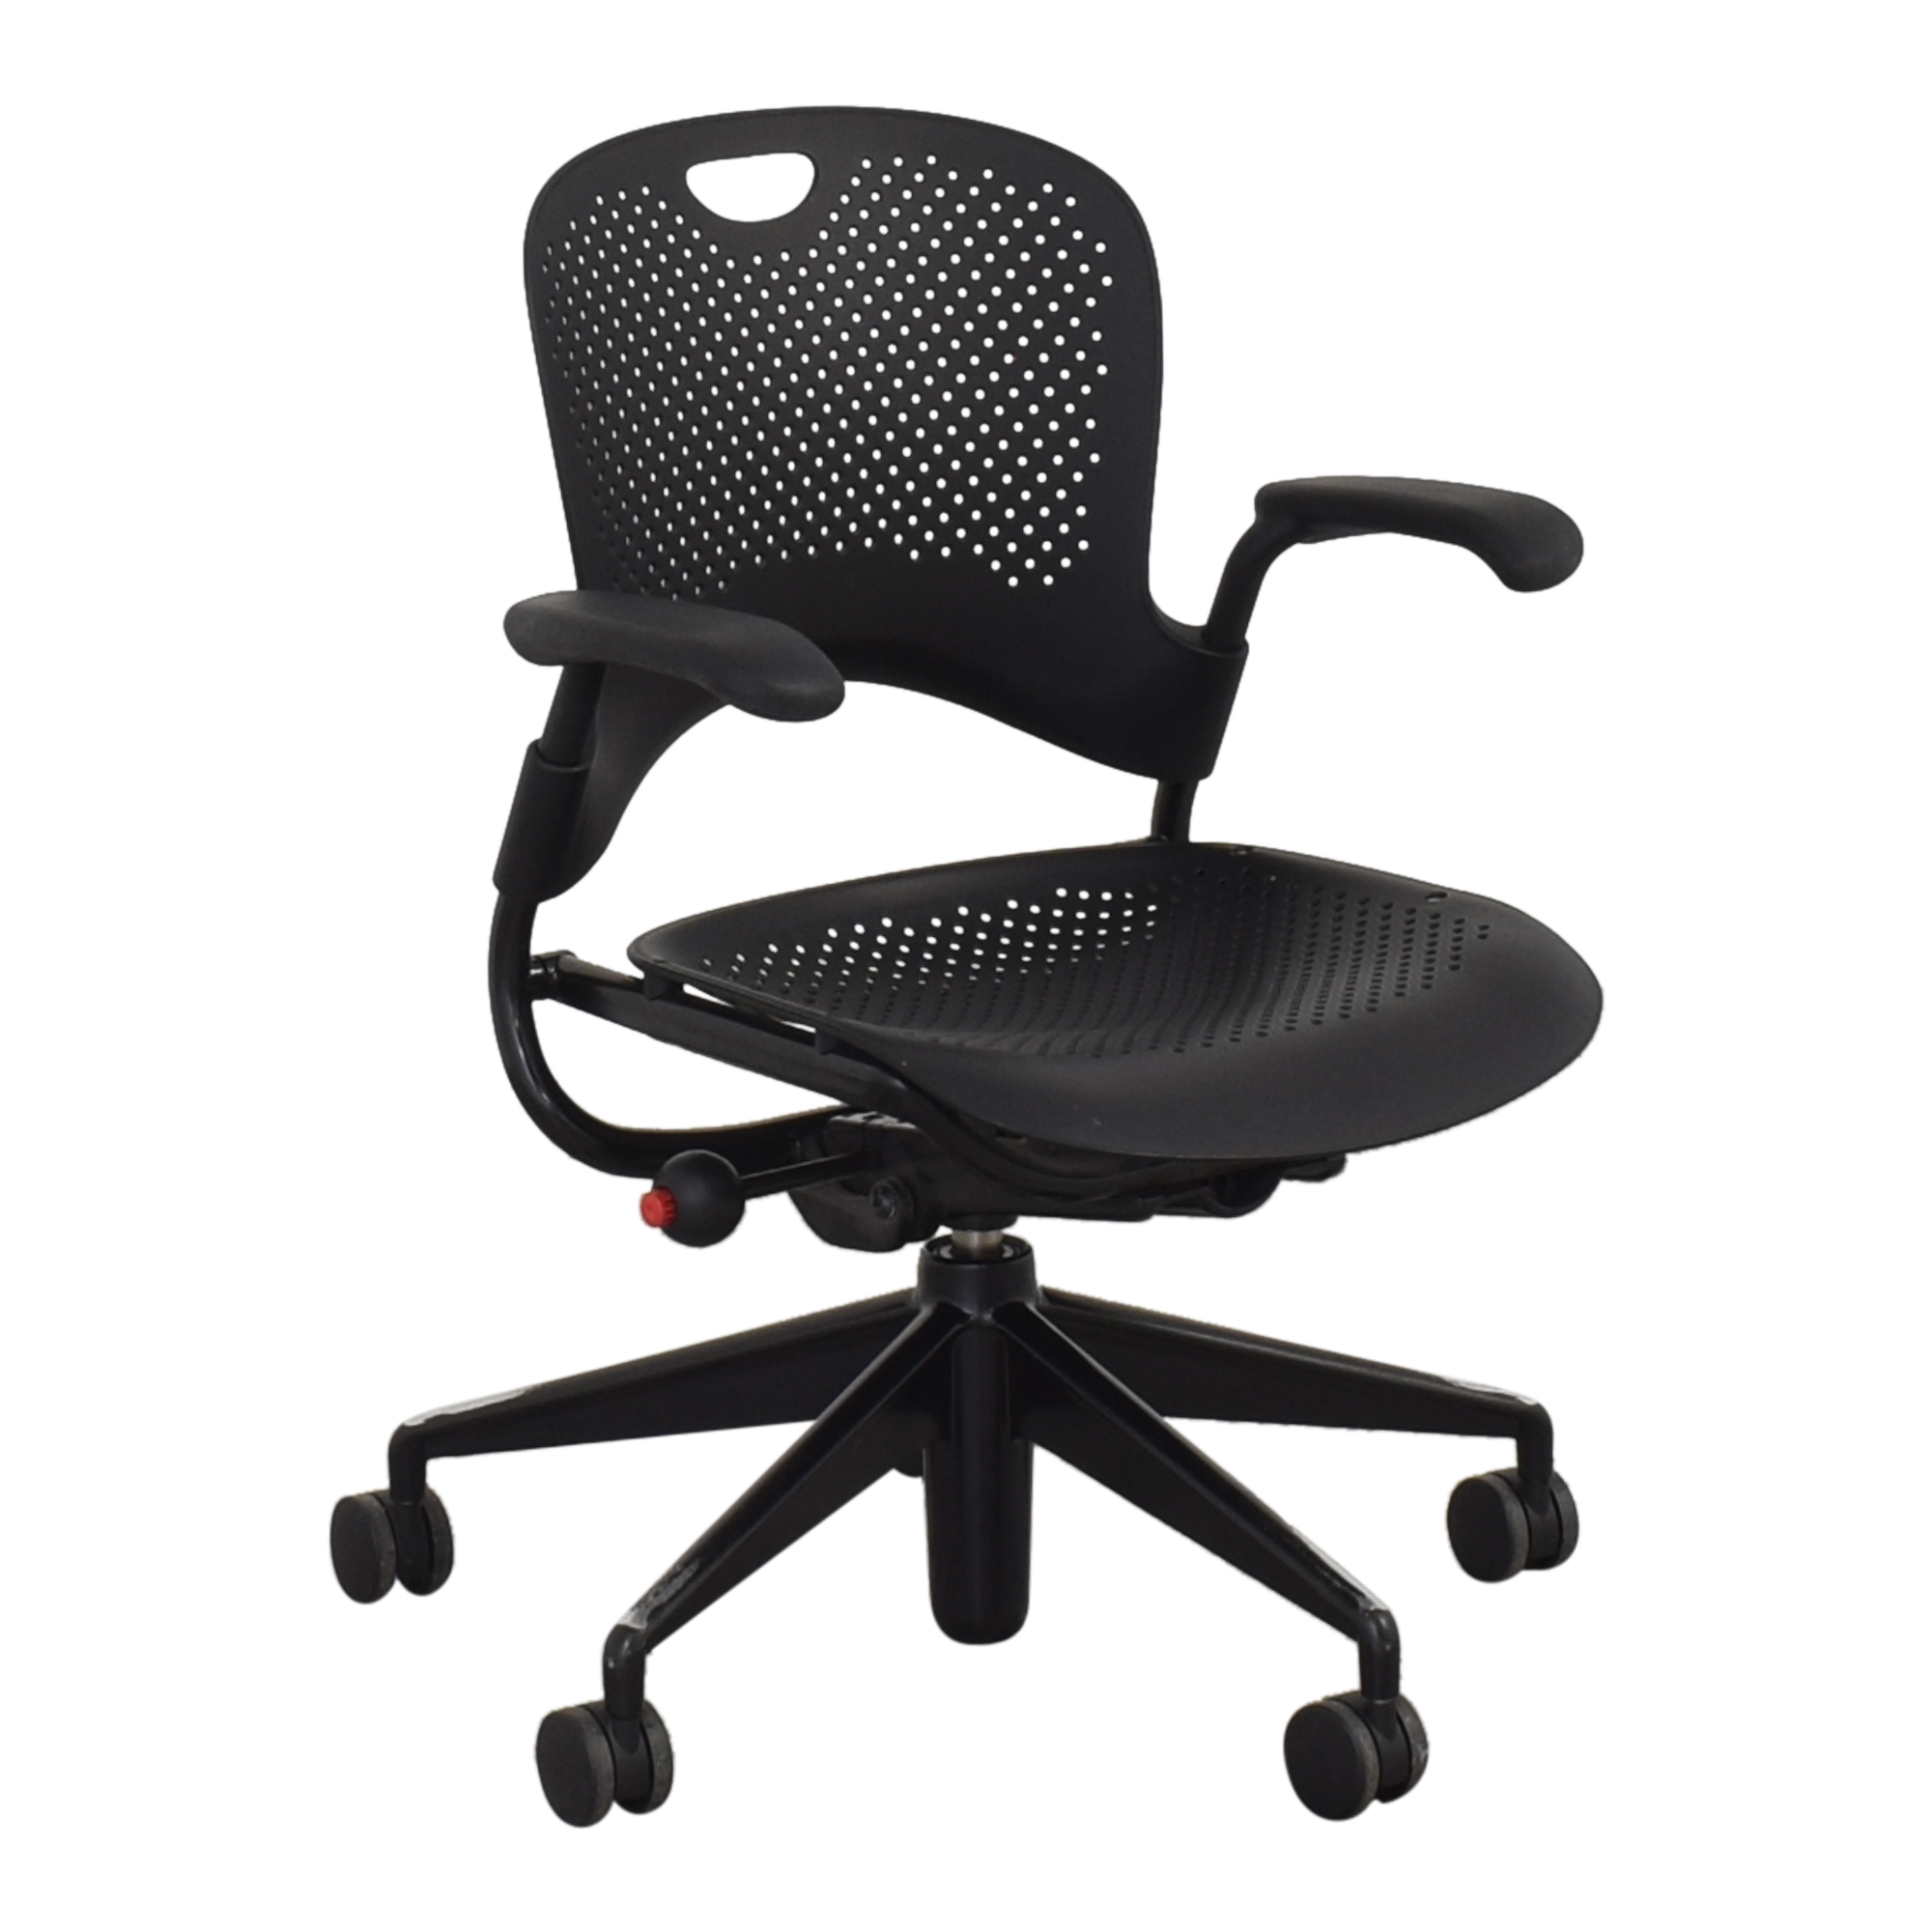 Herman Miller Herman Miller Caper Multipurpose Chair Home Office Chairs